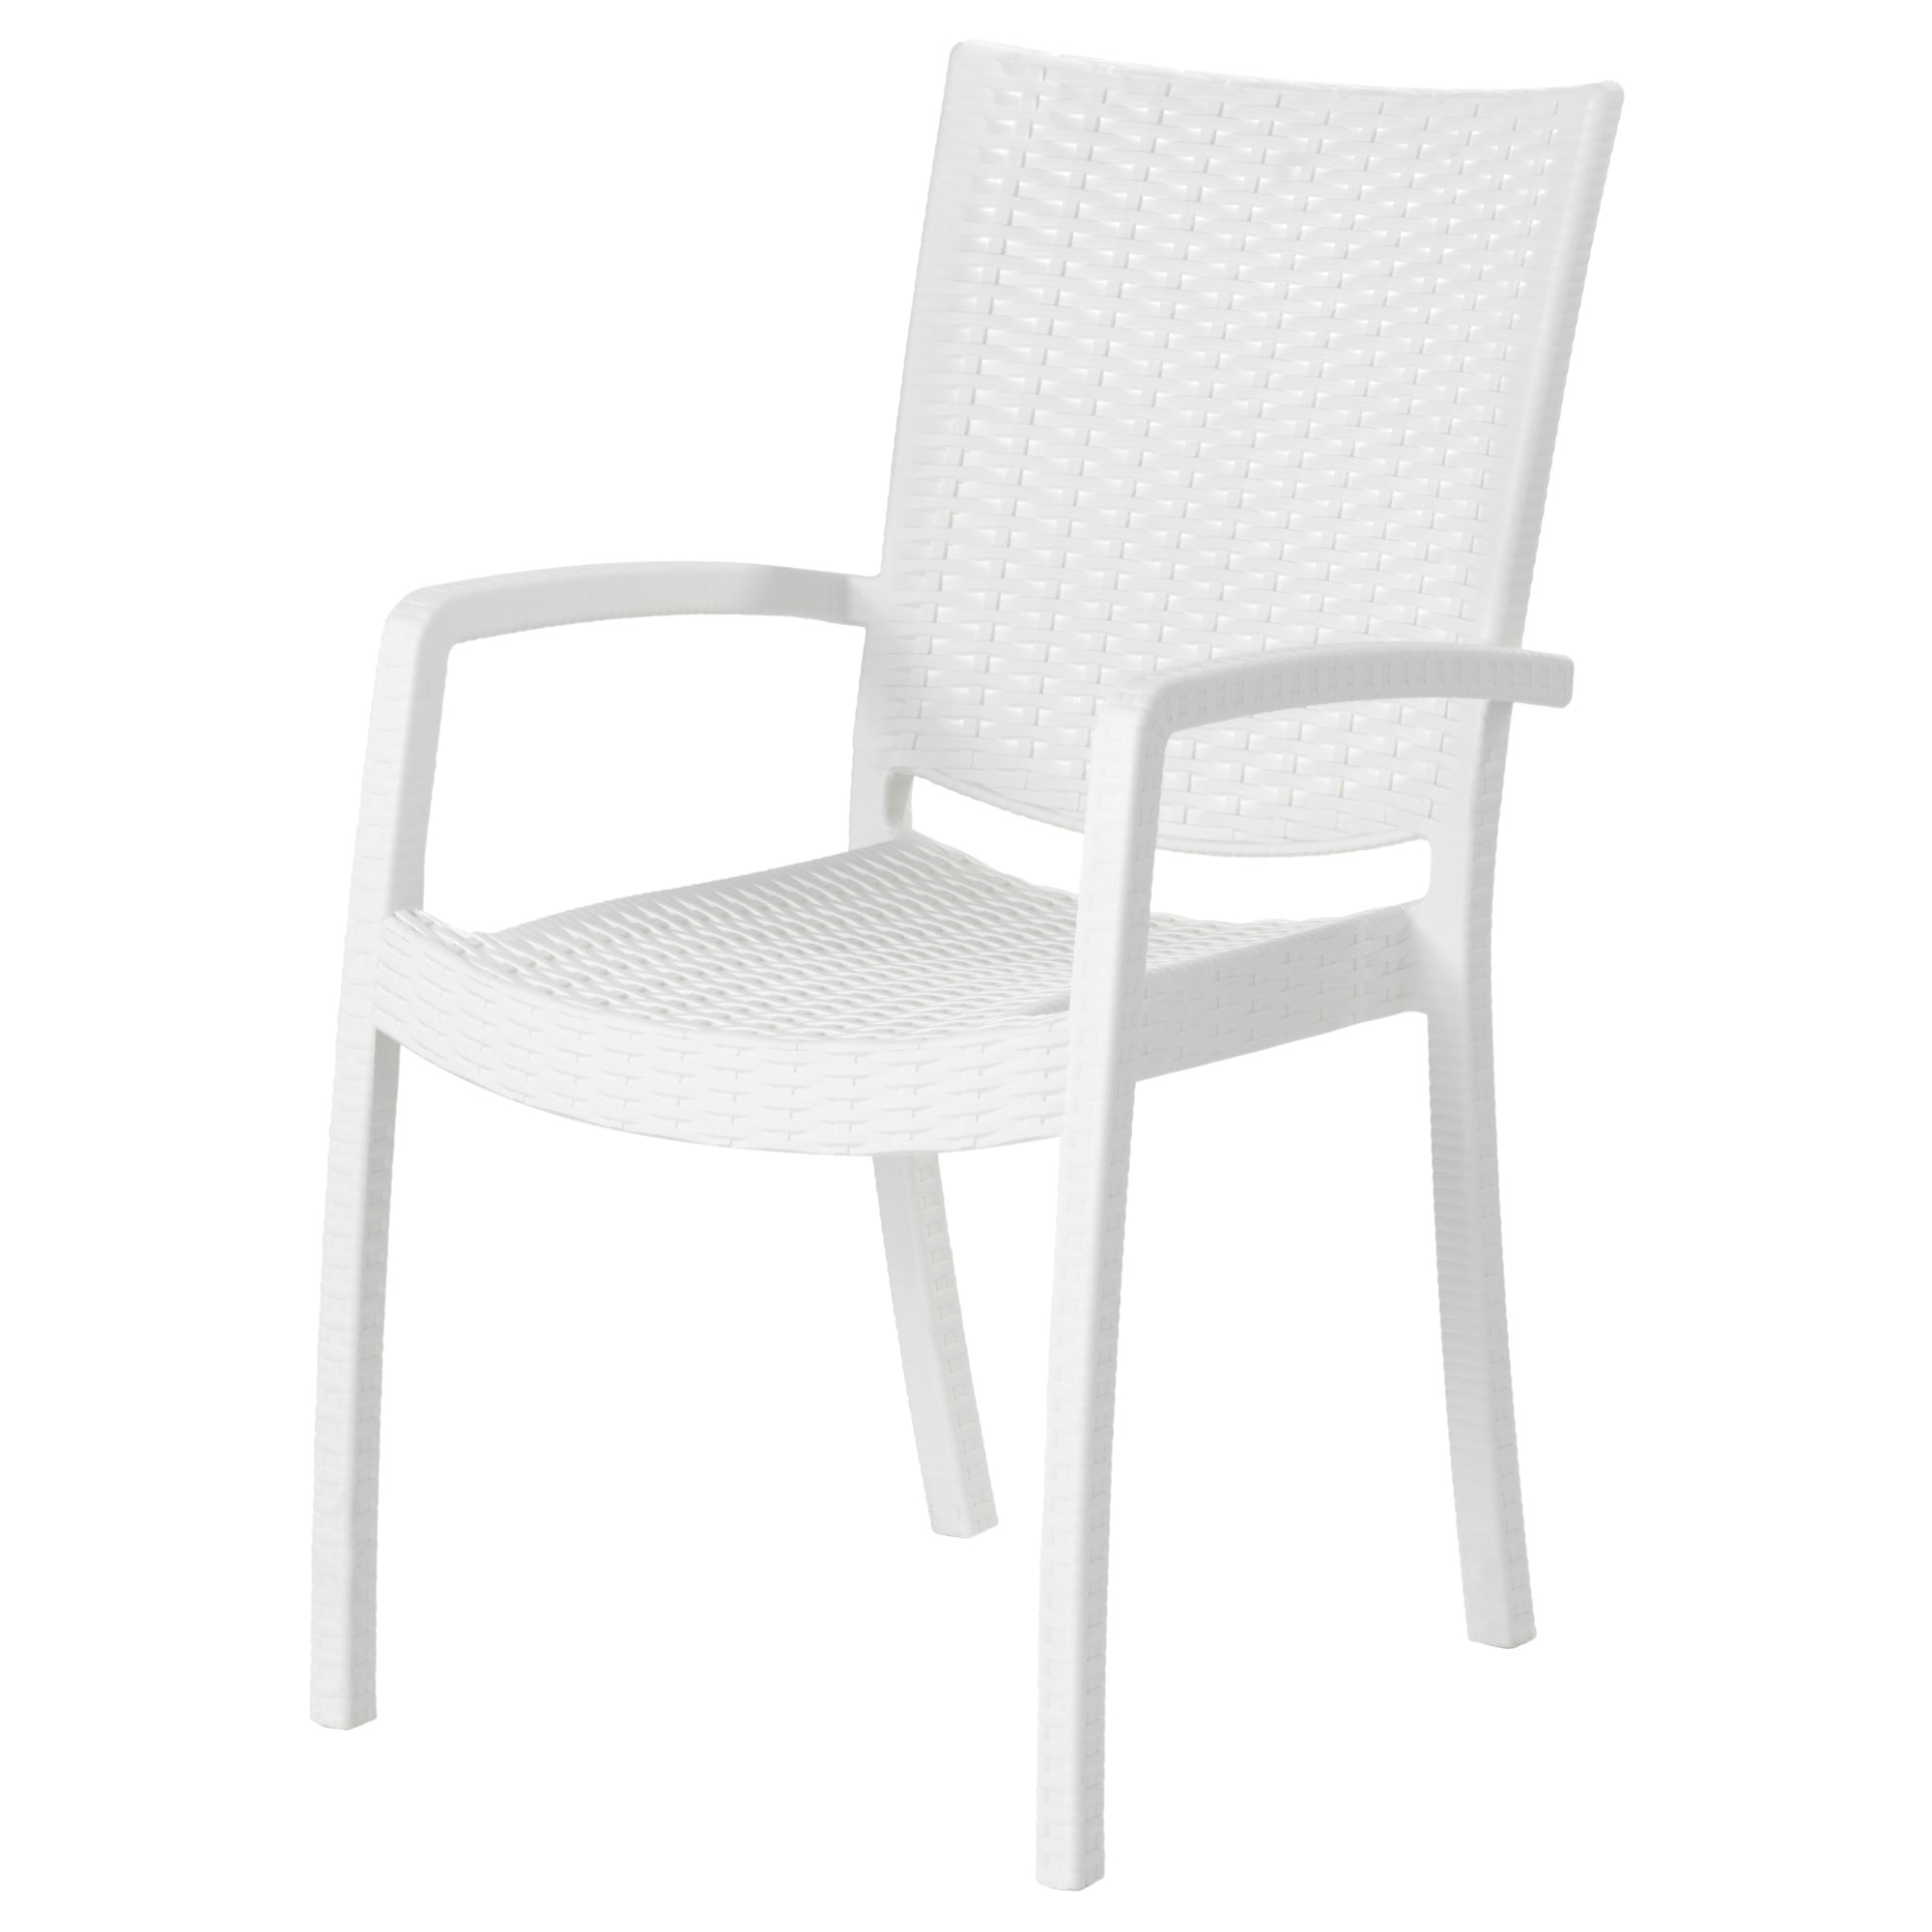 Innamo Armchair Outdoor